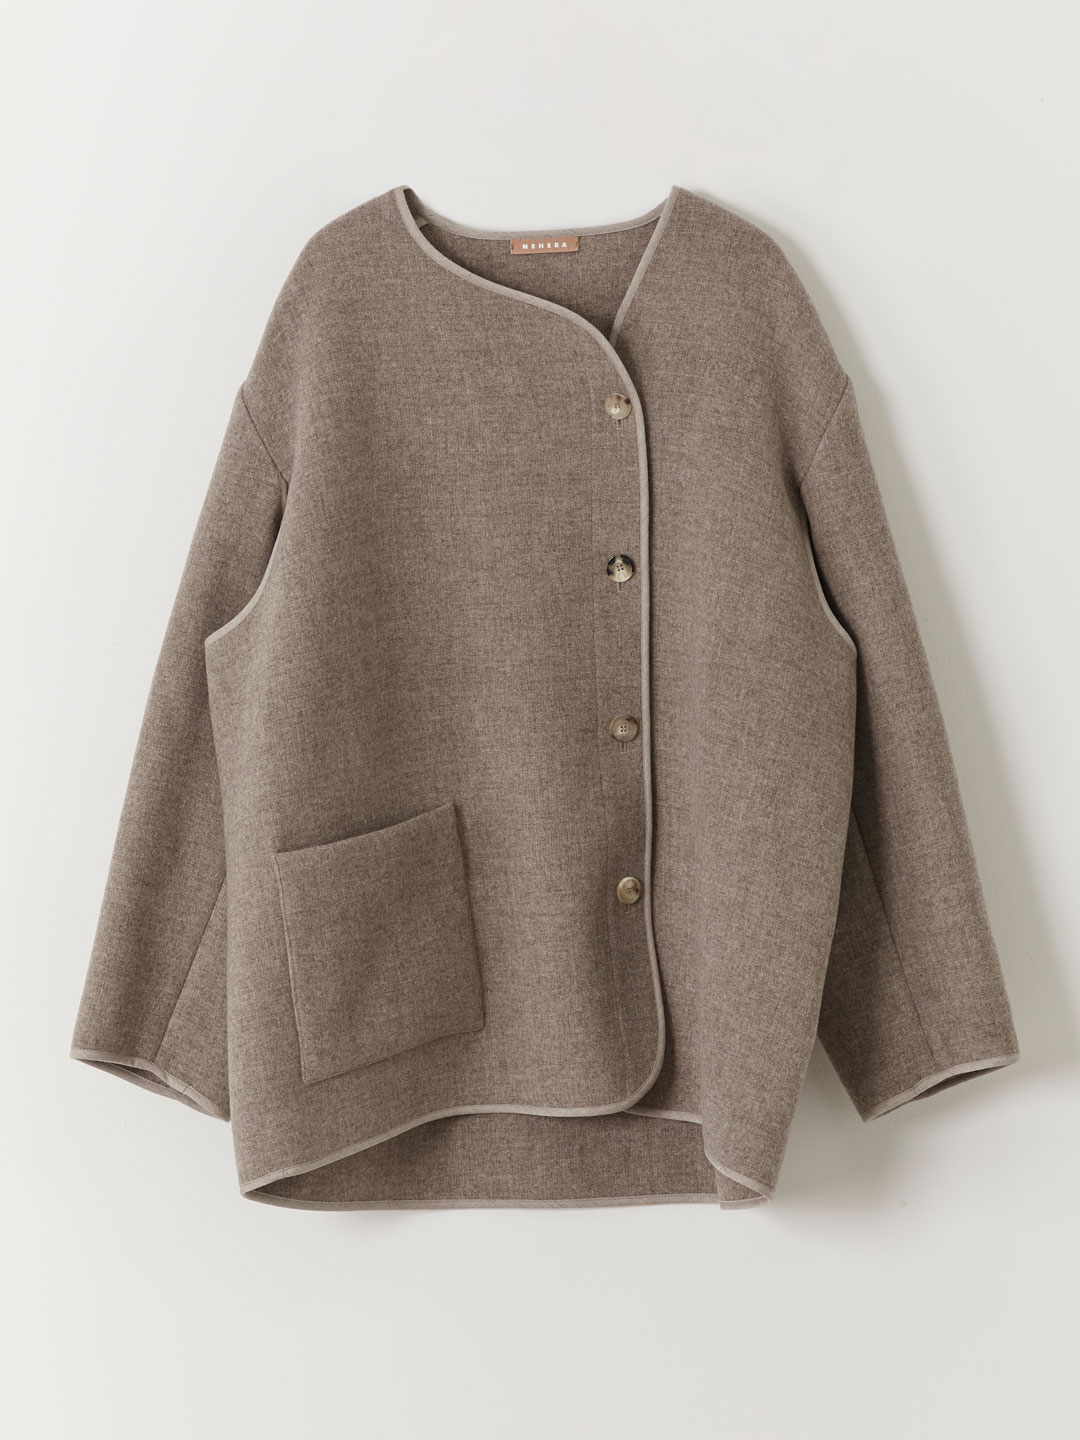 Triple Wool Fleece Jacket - Beige